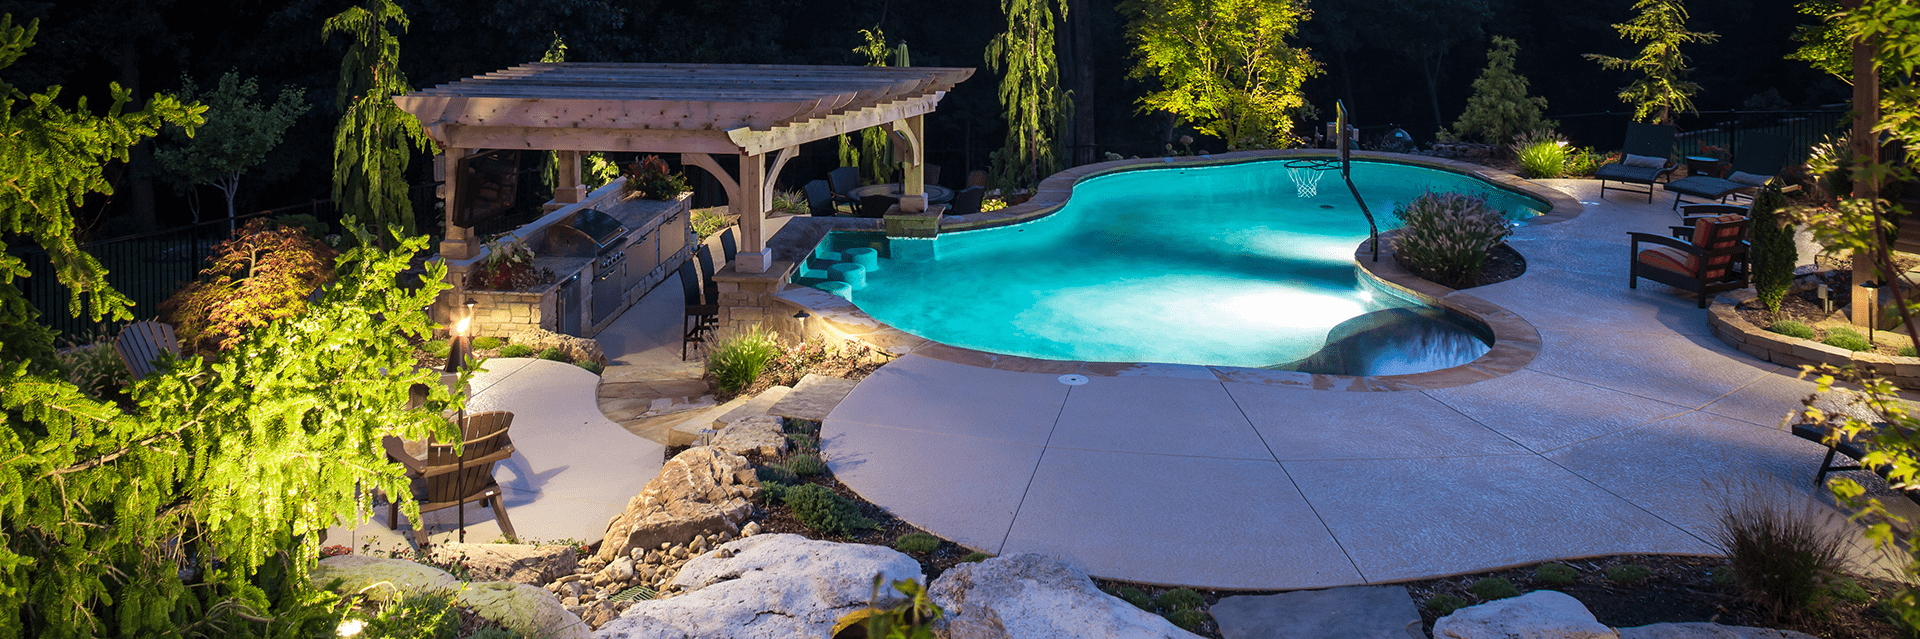 Custom landscape lighting for around a pool